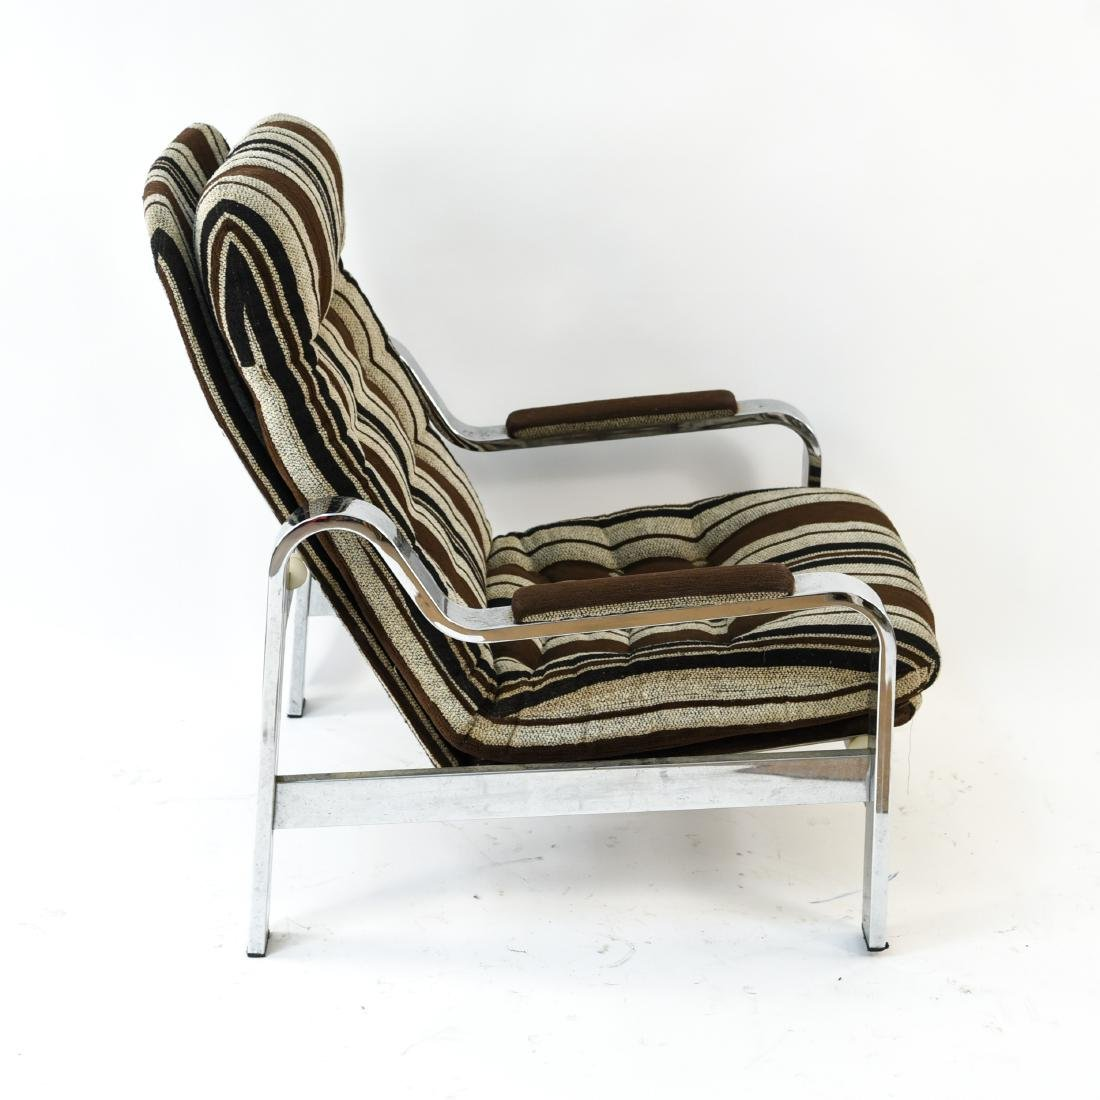 MID-CENTURY CHROME LOUNGE CHAIR & OTTOMAN